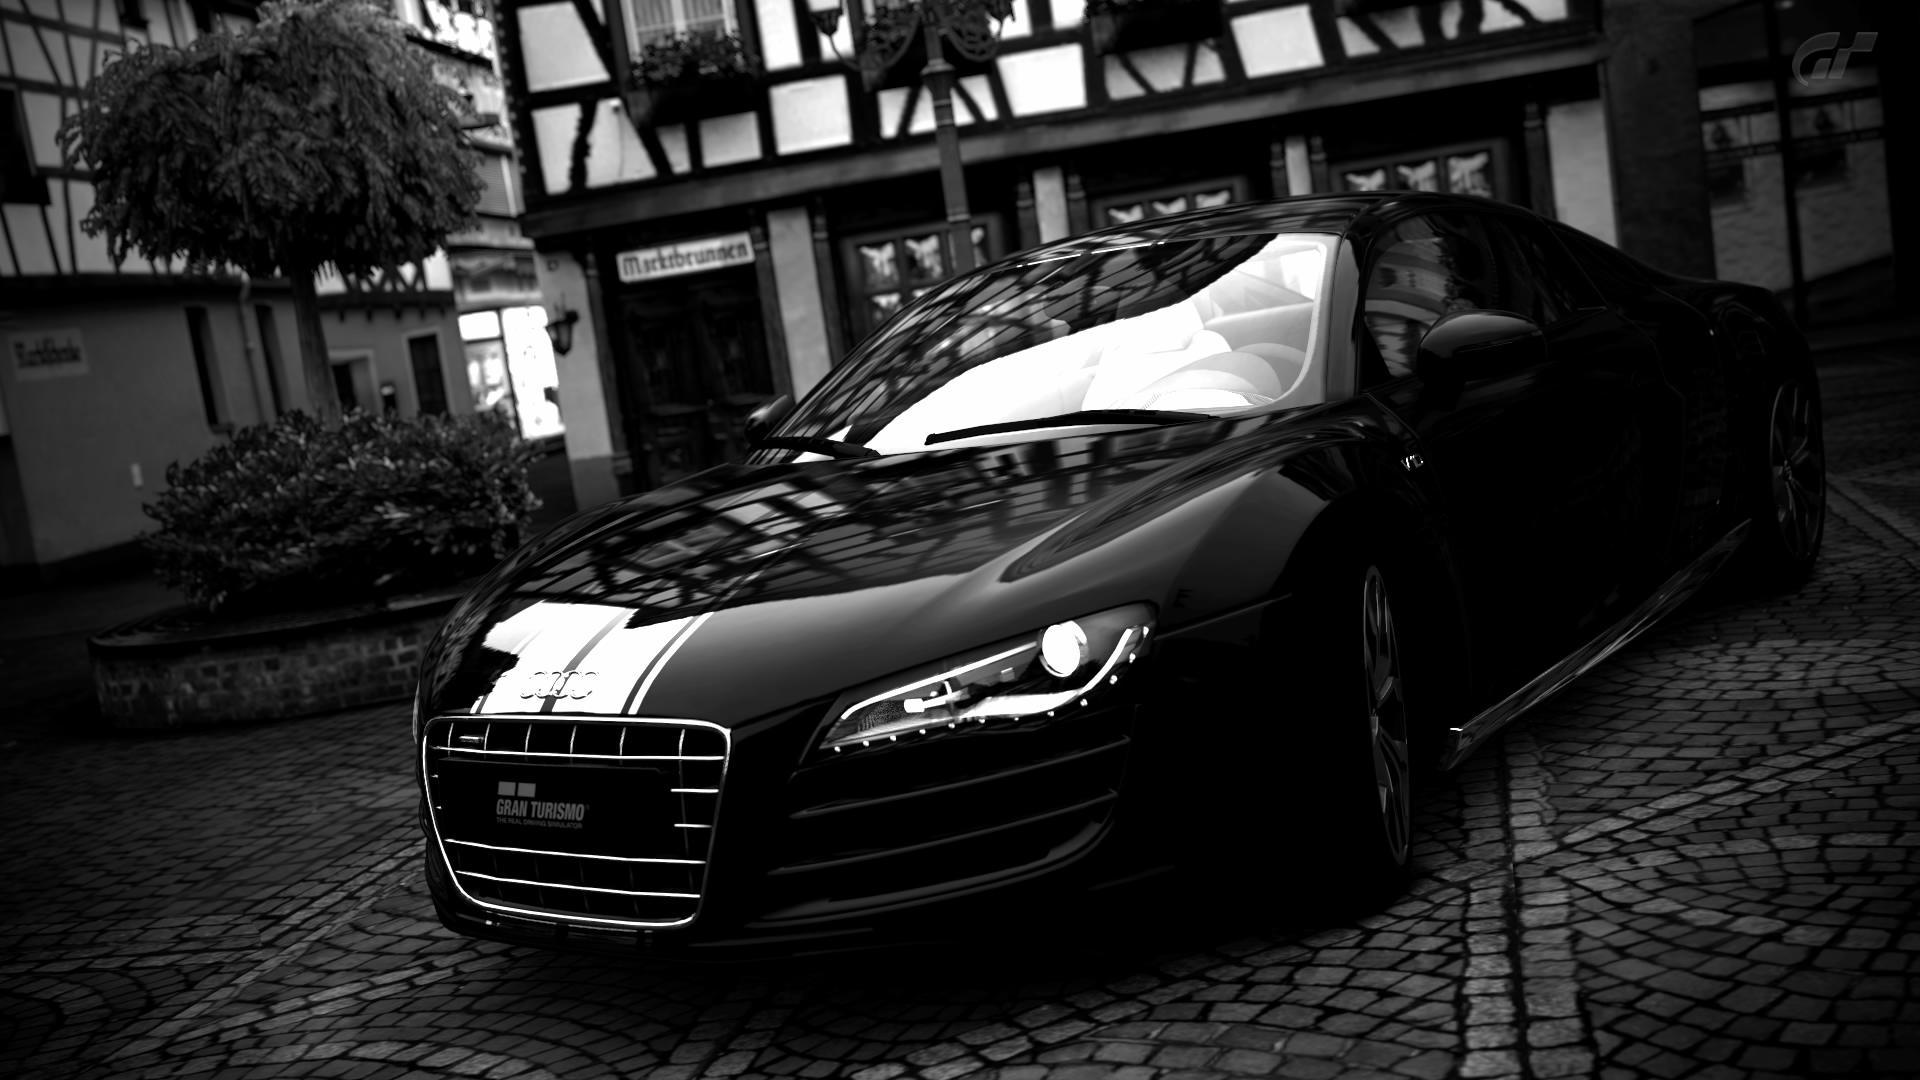 Audi R8 Black Hd Wallpaper 1080p Fitrini S Wallpaper